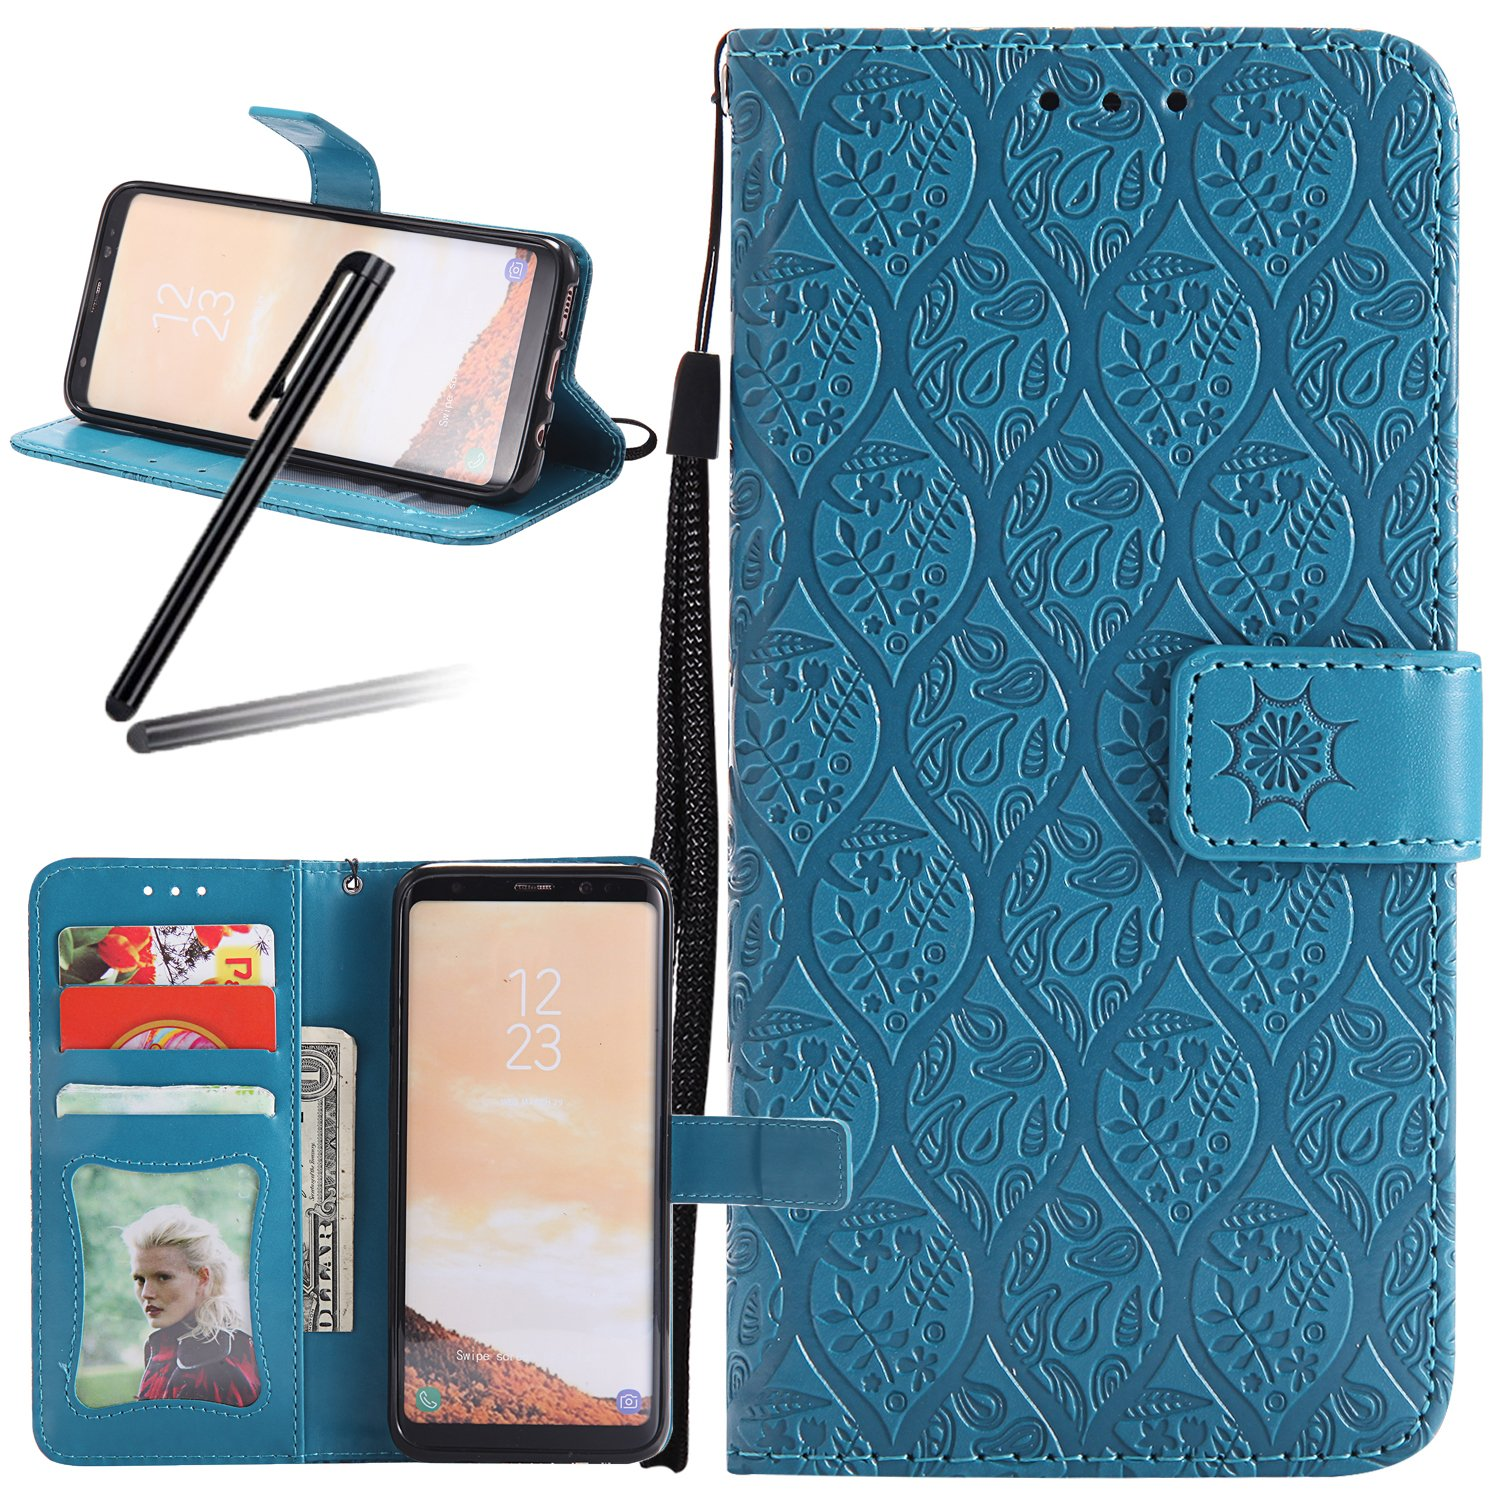 Galaxy S8 Stand Case, Samsung Galaxy S8 Wallet Case, Galaxy S8 2017 PU Leather Case, SKYMARS Weave Flower Pattern Embossed PU Leather Flip Kickstand Cards Slot Cash Pockets Wallet Magnetic Closure Book Style Case for Samsung Galaxy S8 2017 Weave Dark Blue